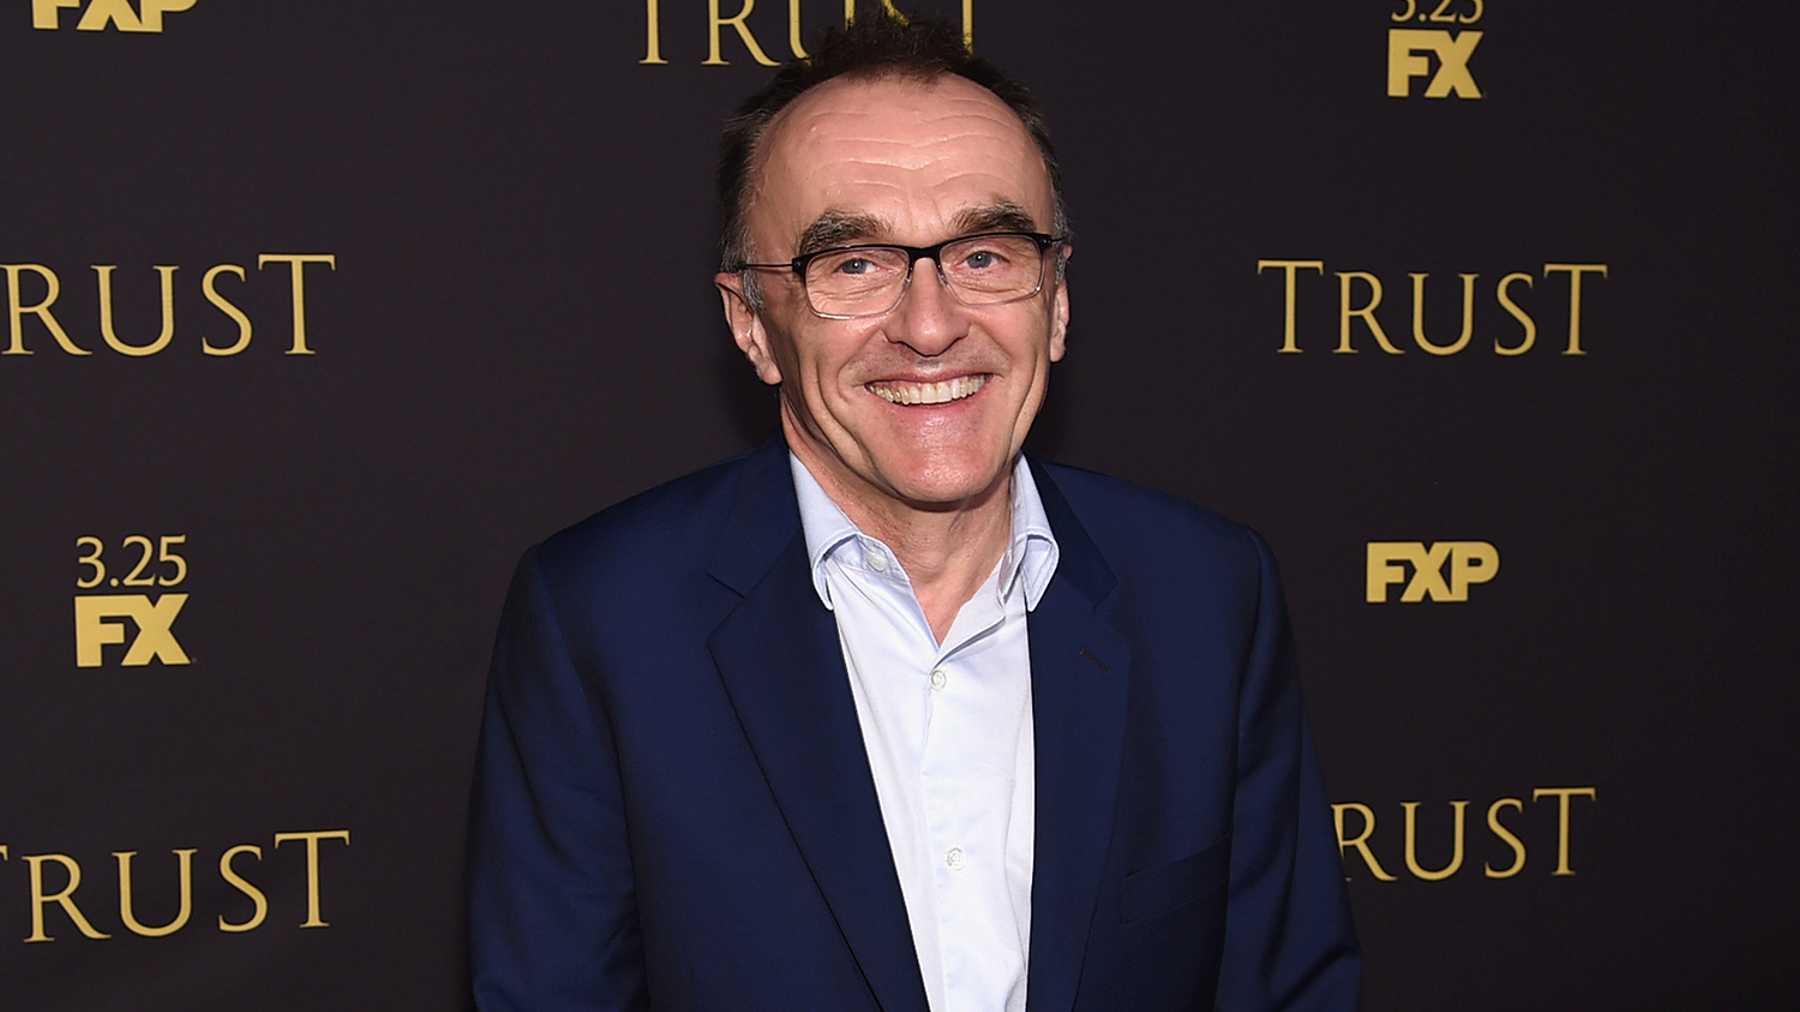 The Complete Danny Boyle Collection